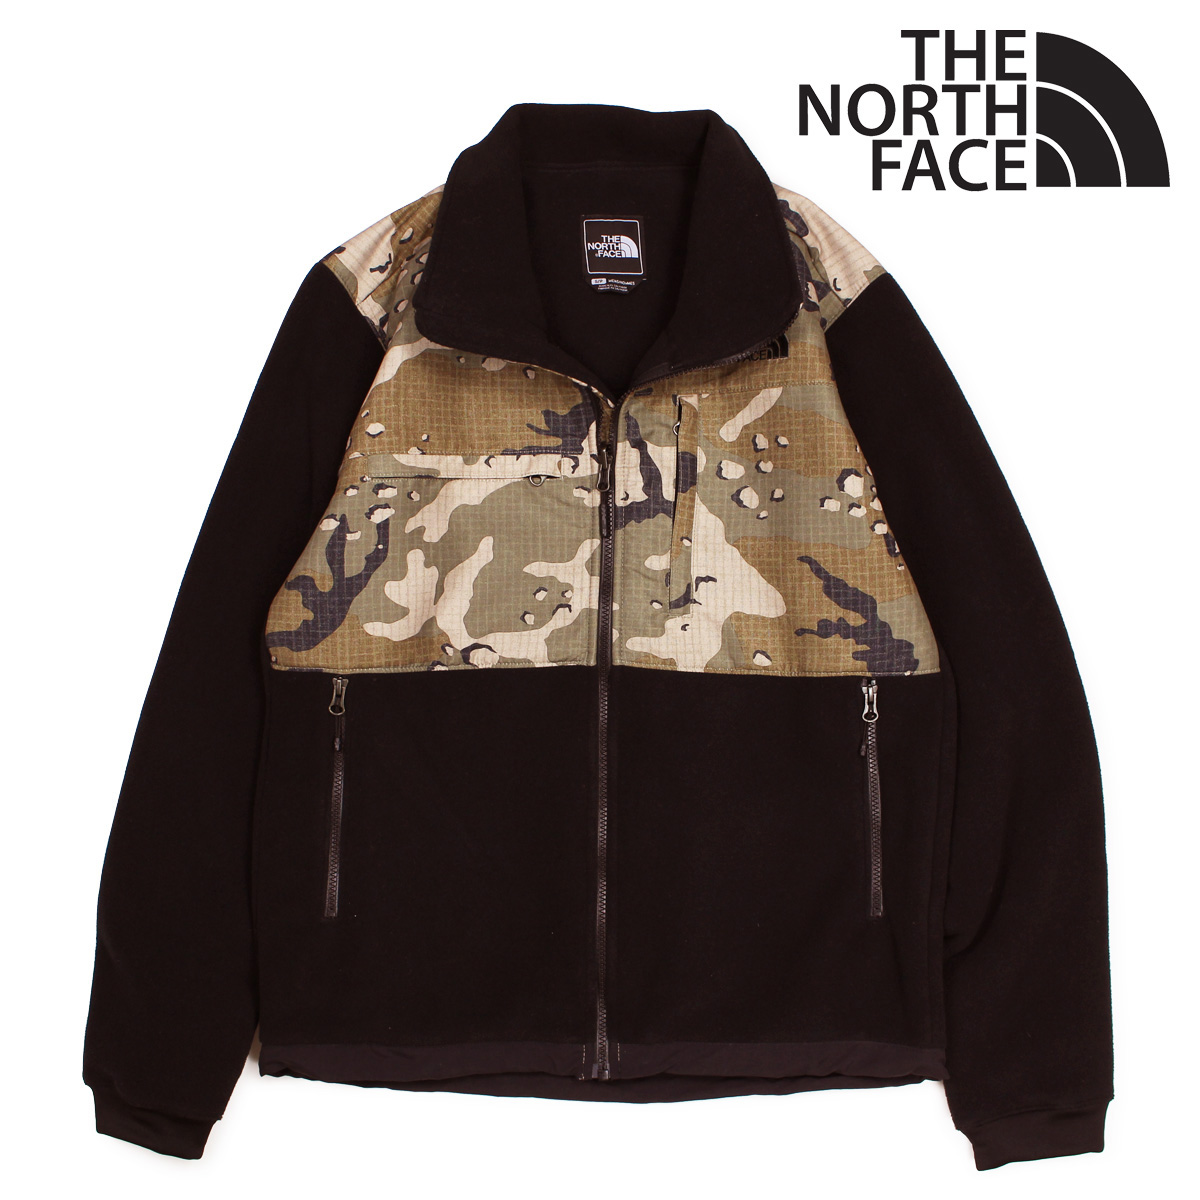 2d5be57bd THE NORTH FACE North Face jacket fleece jacket men MENS DENALI 2 FLEECE  JACKET duck TNF02K4